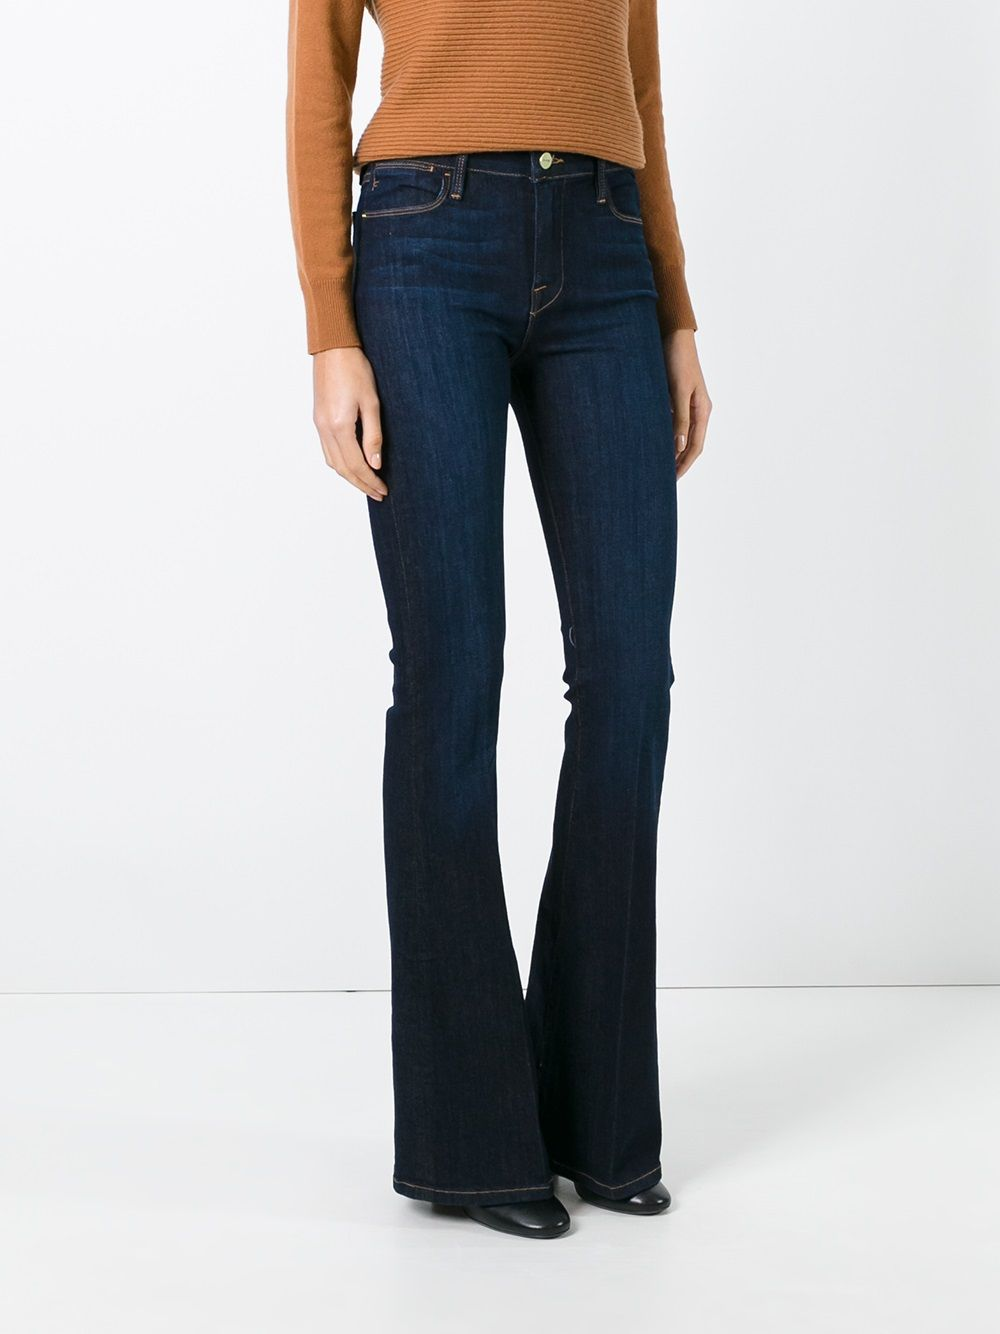 Picture of Frame Denim | `Suther Land` Jeans